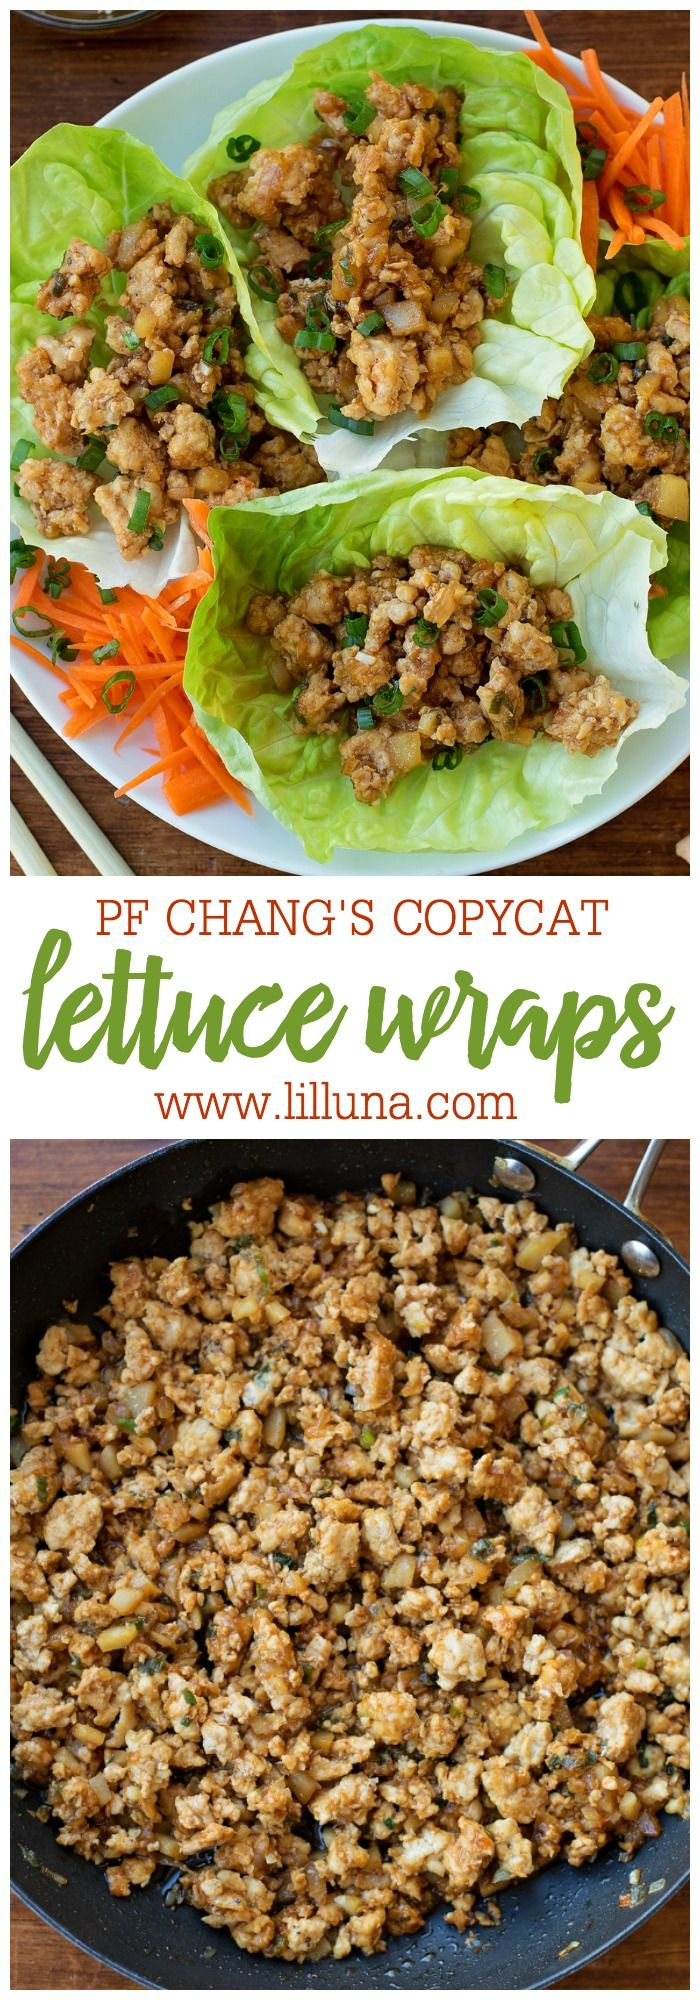 This PF Changs Chicken Lettuce Wraps recipe is a copycat of a restaurant favorite. It only takes a handful of ingredients and 20